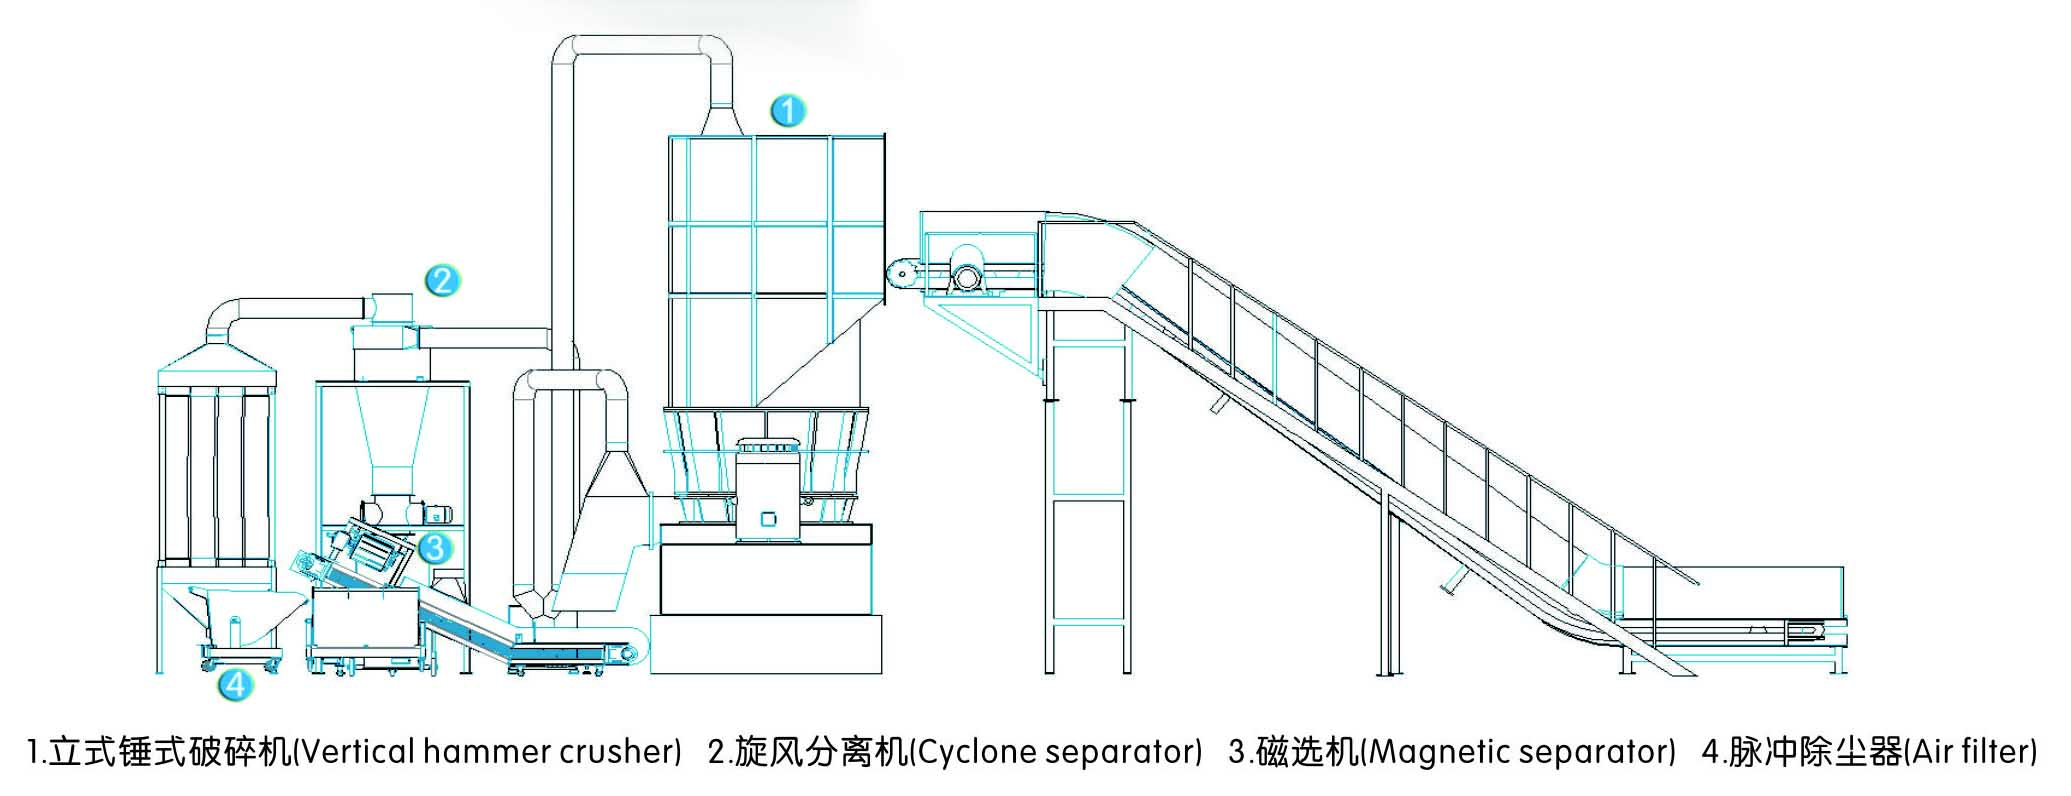 Wastewater Grinder Instead Of Bar Screen Solid Waste